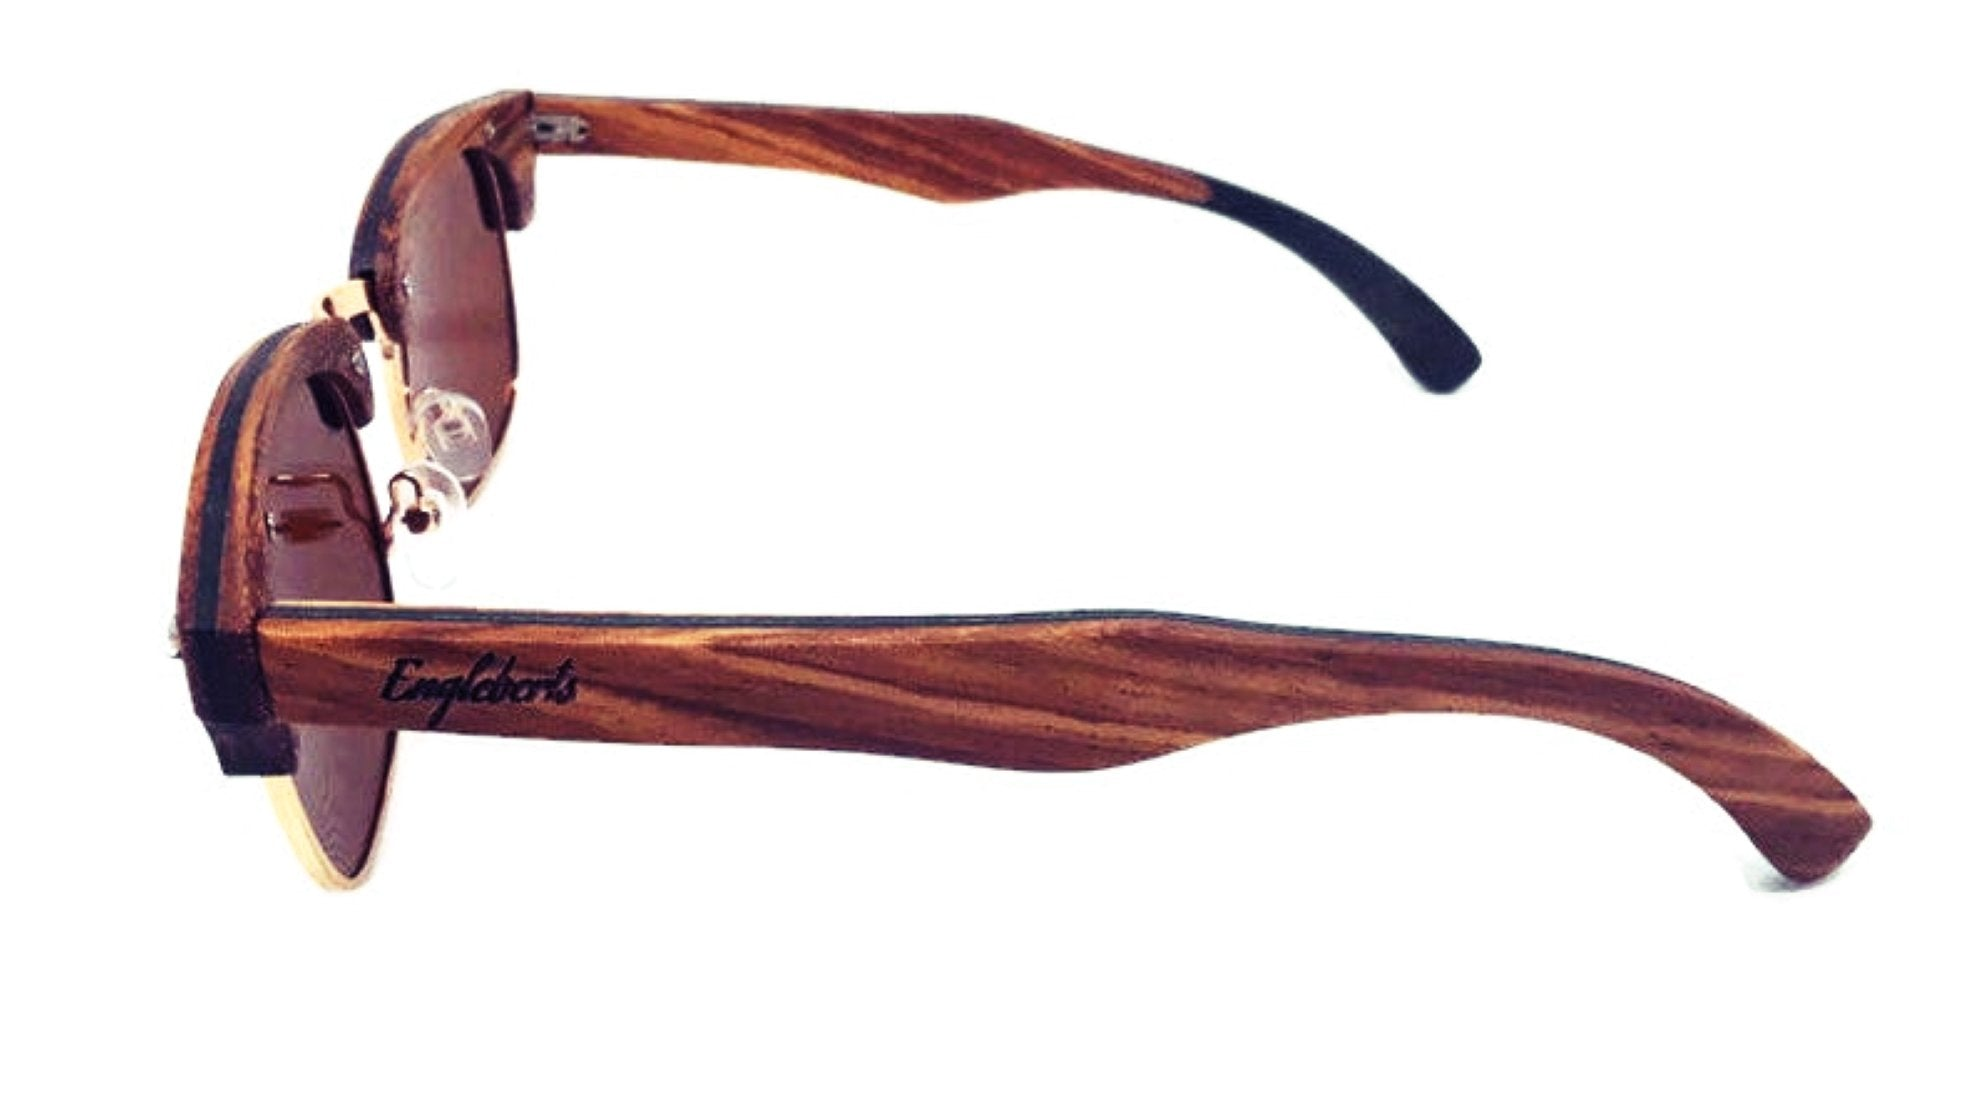 Real Ebony and ZebraWood Sunglasses With Bamboo Case, Tea Colored